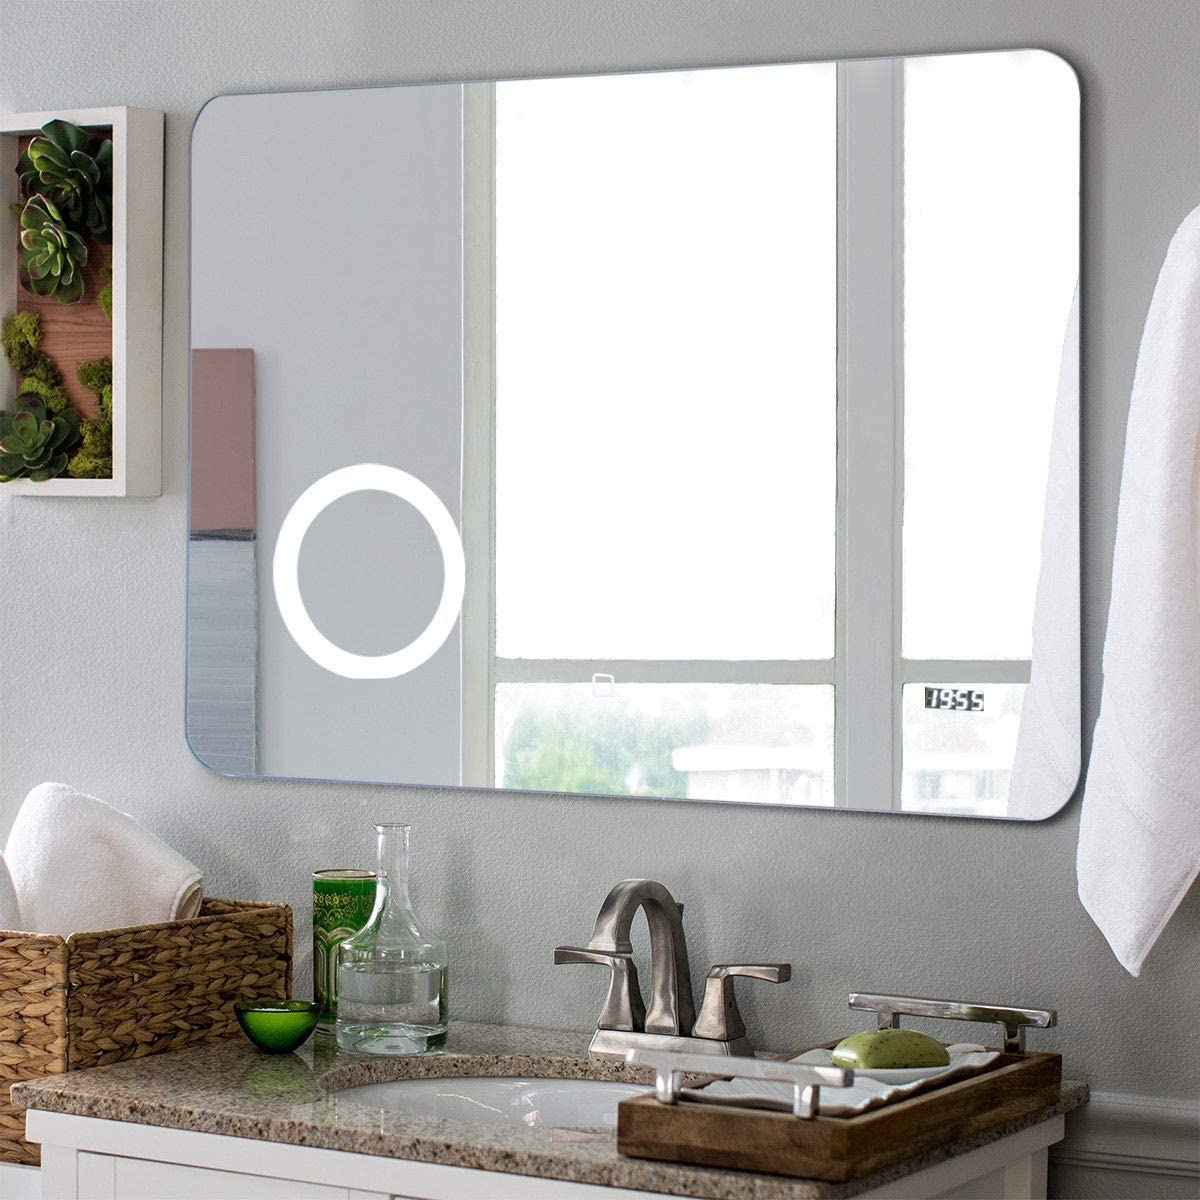 King77777 New Durable Modern Compact LED Touch Button Wall-Mounted Makeup Mirror with Clock Accent Bedroom Bathroom